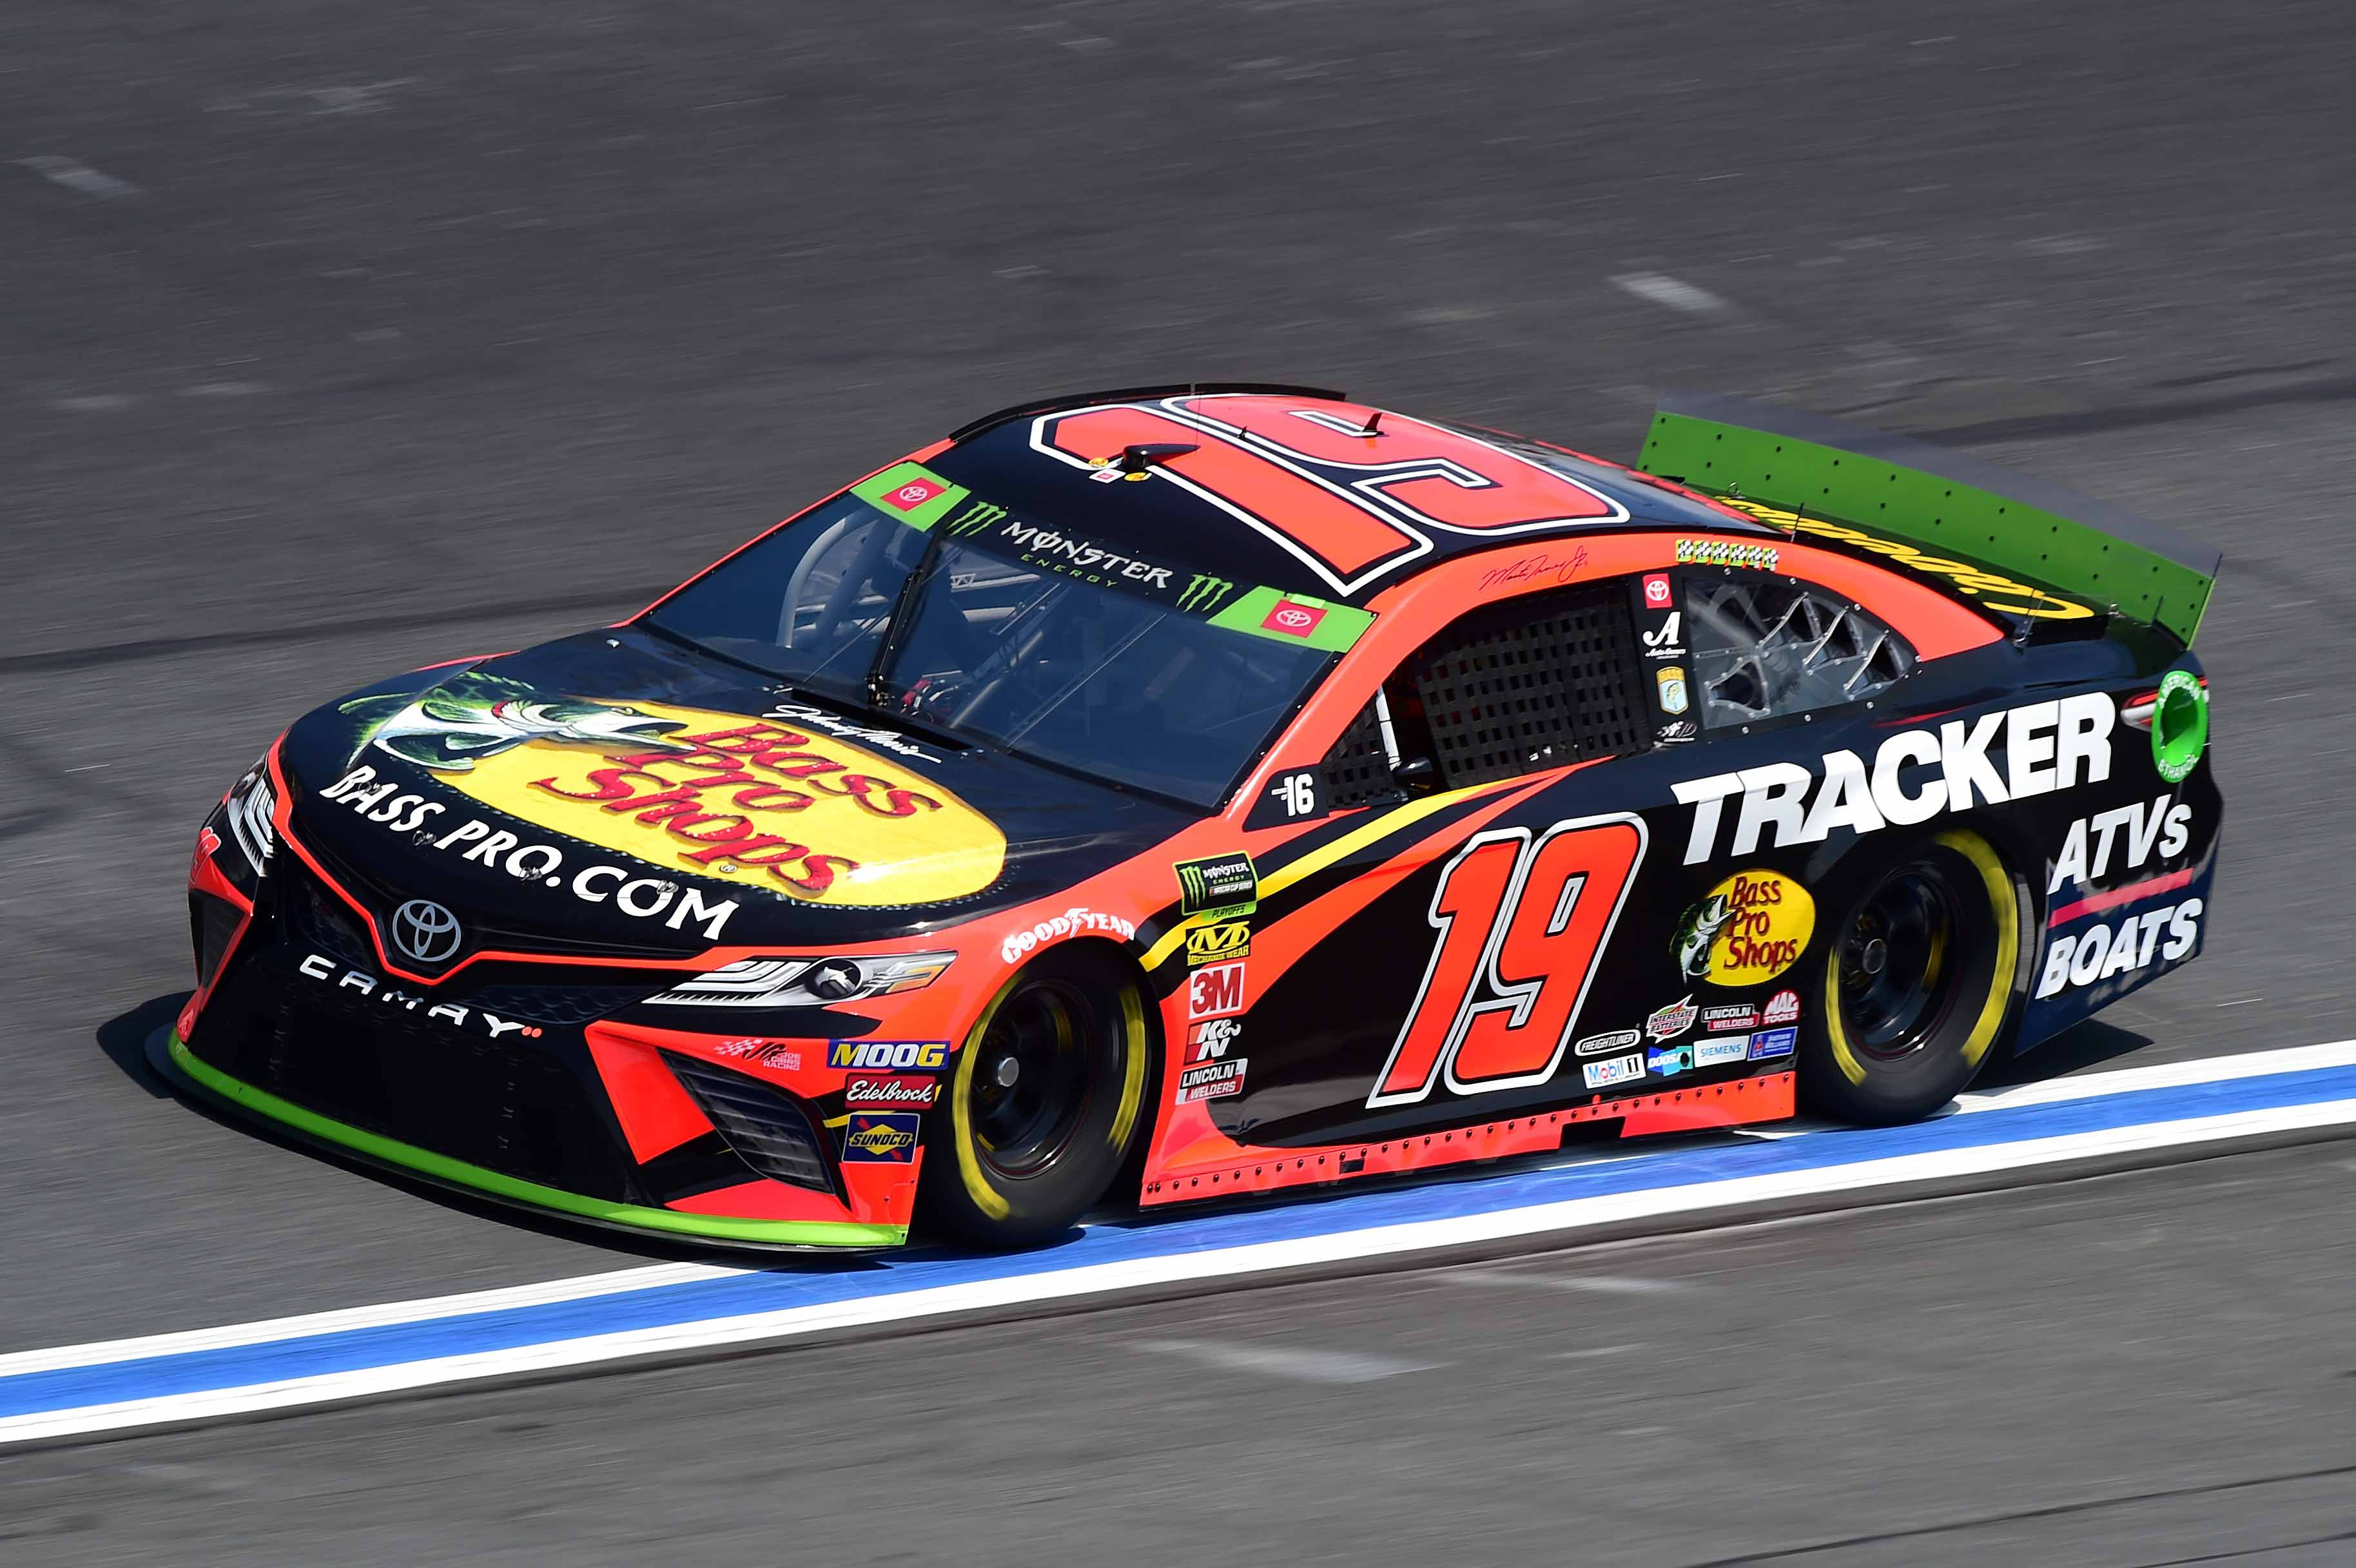 Charlotte ROVAL Final Practice Results: September 28, 2019 (NASCAR Cup Series) - Racing News